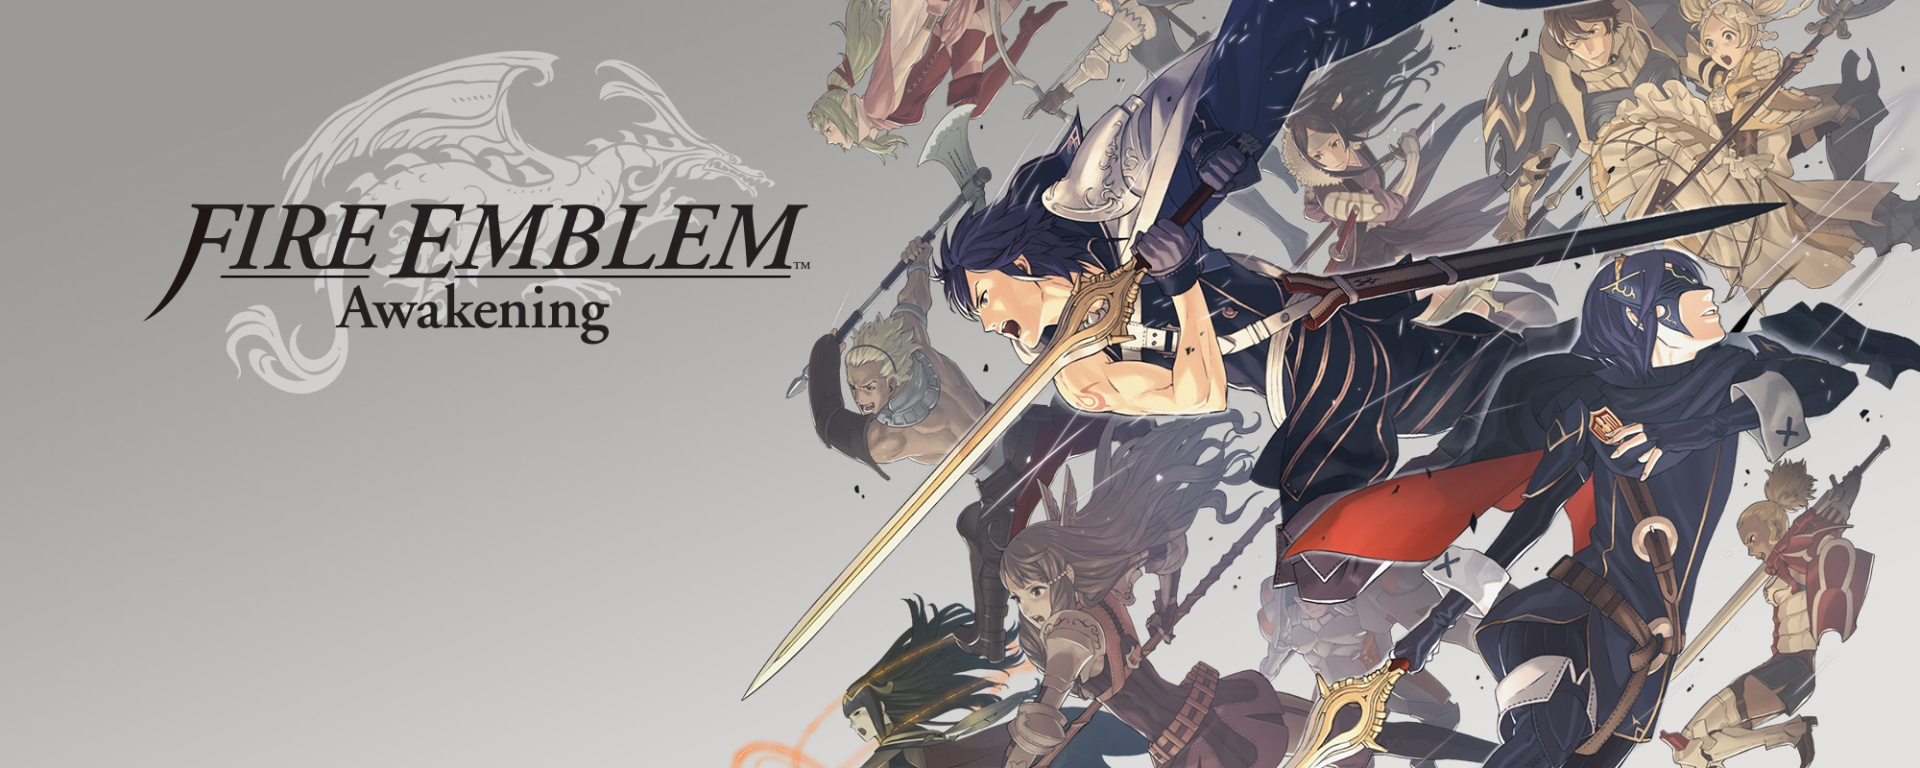 My Top 5 Favorite Fire Emblem: Awakening Characters